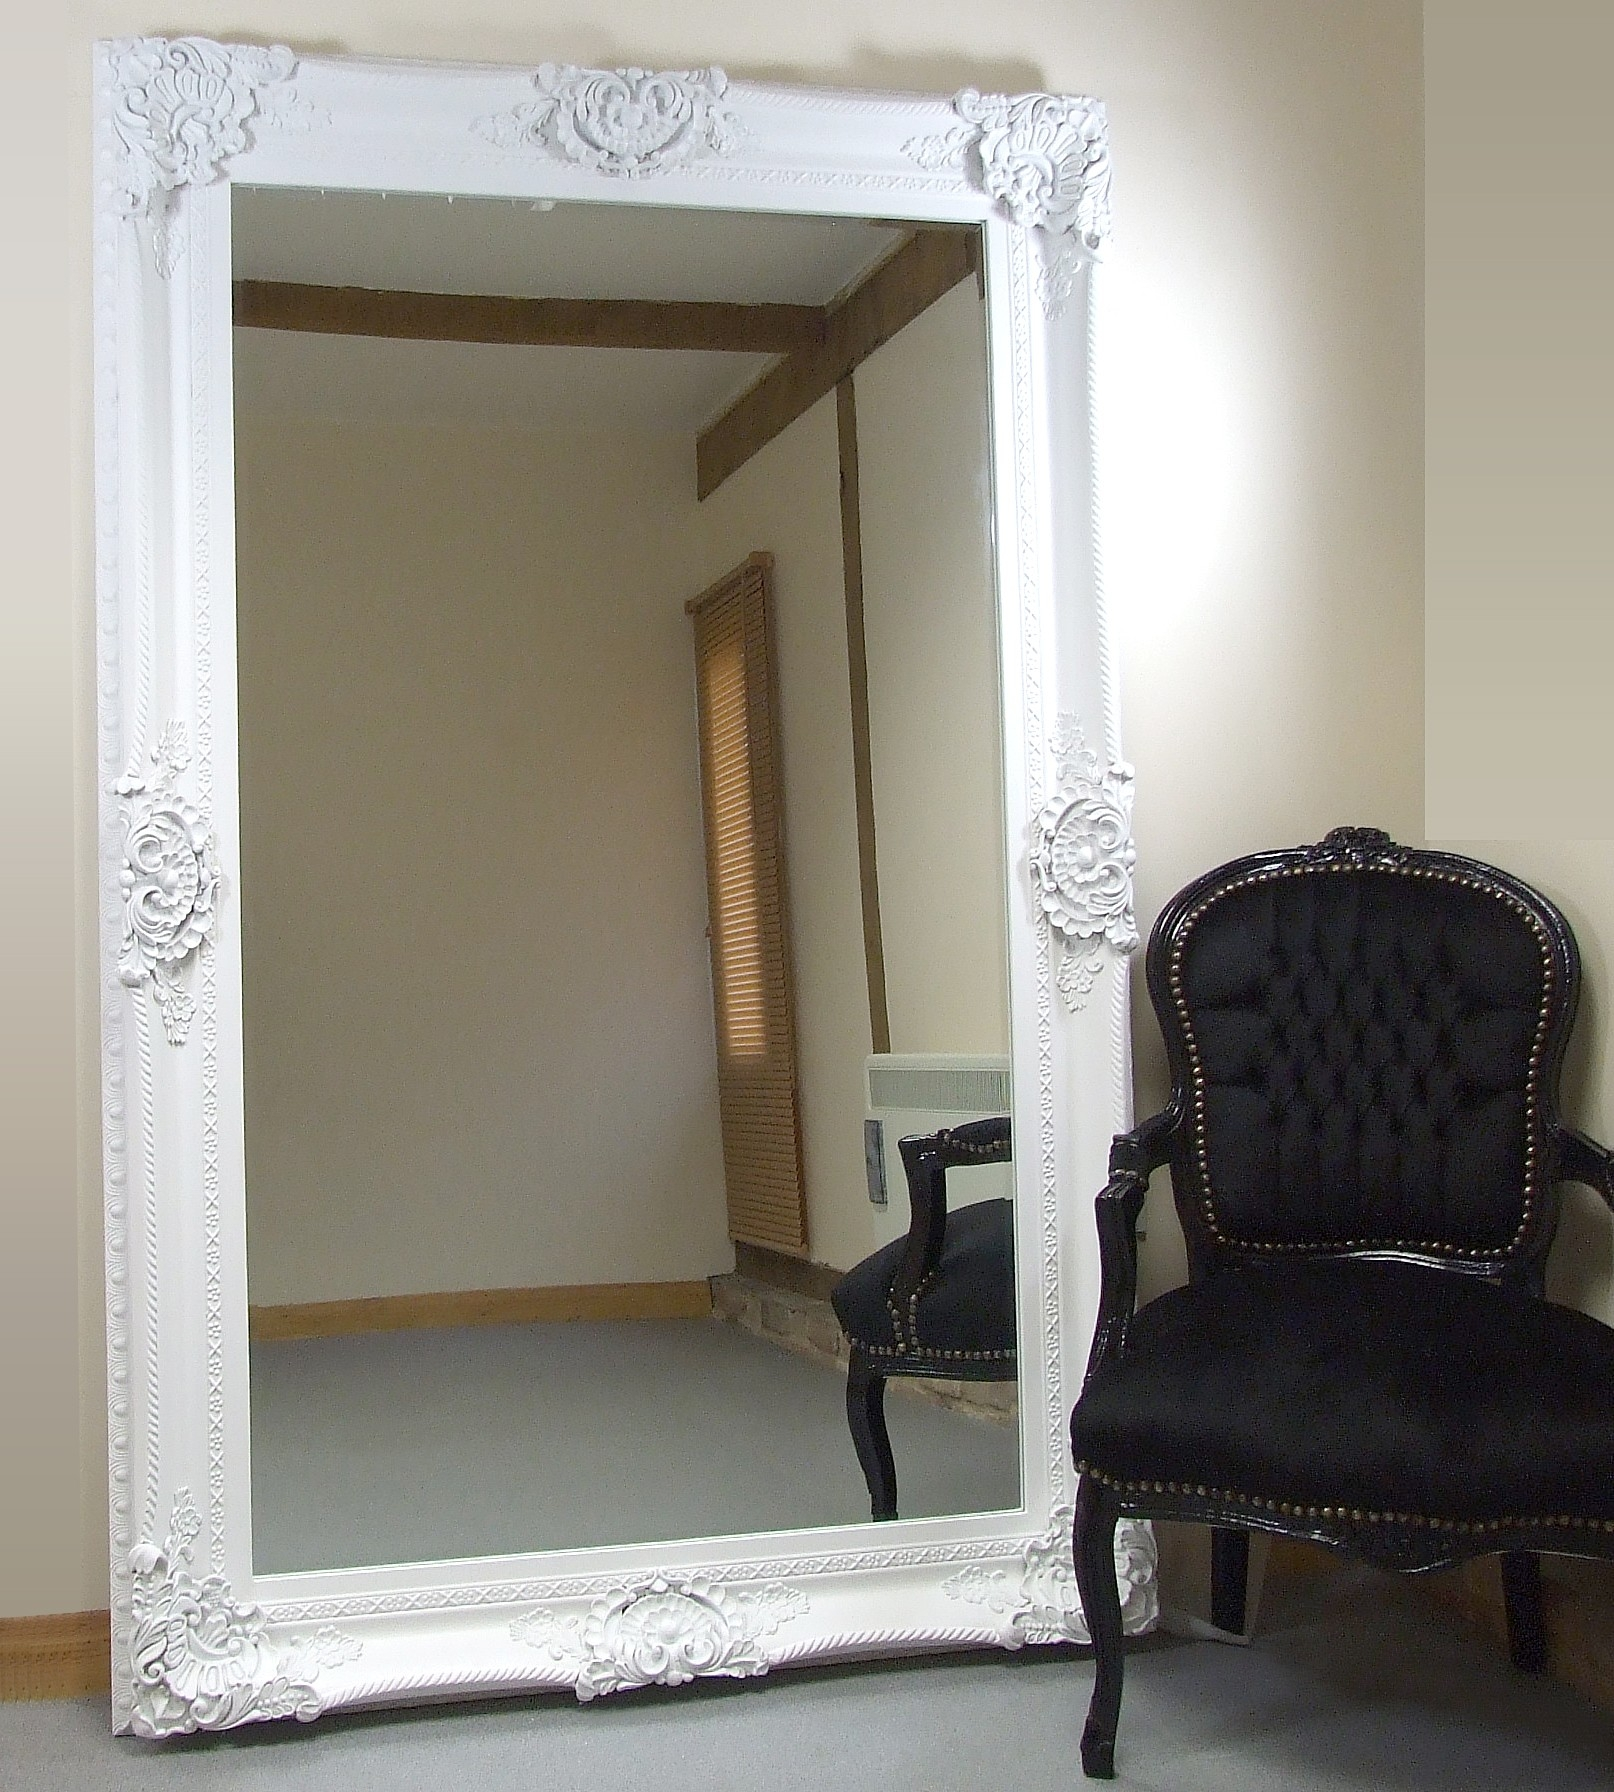 Seville Ornate Extra Large French Full Length Wall Leaner Mirror Inside Full Length French Mirror (Image 14 of 15)